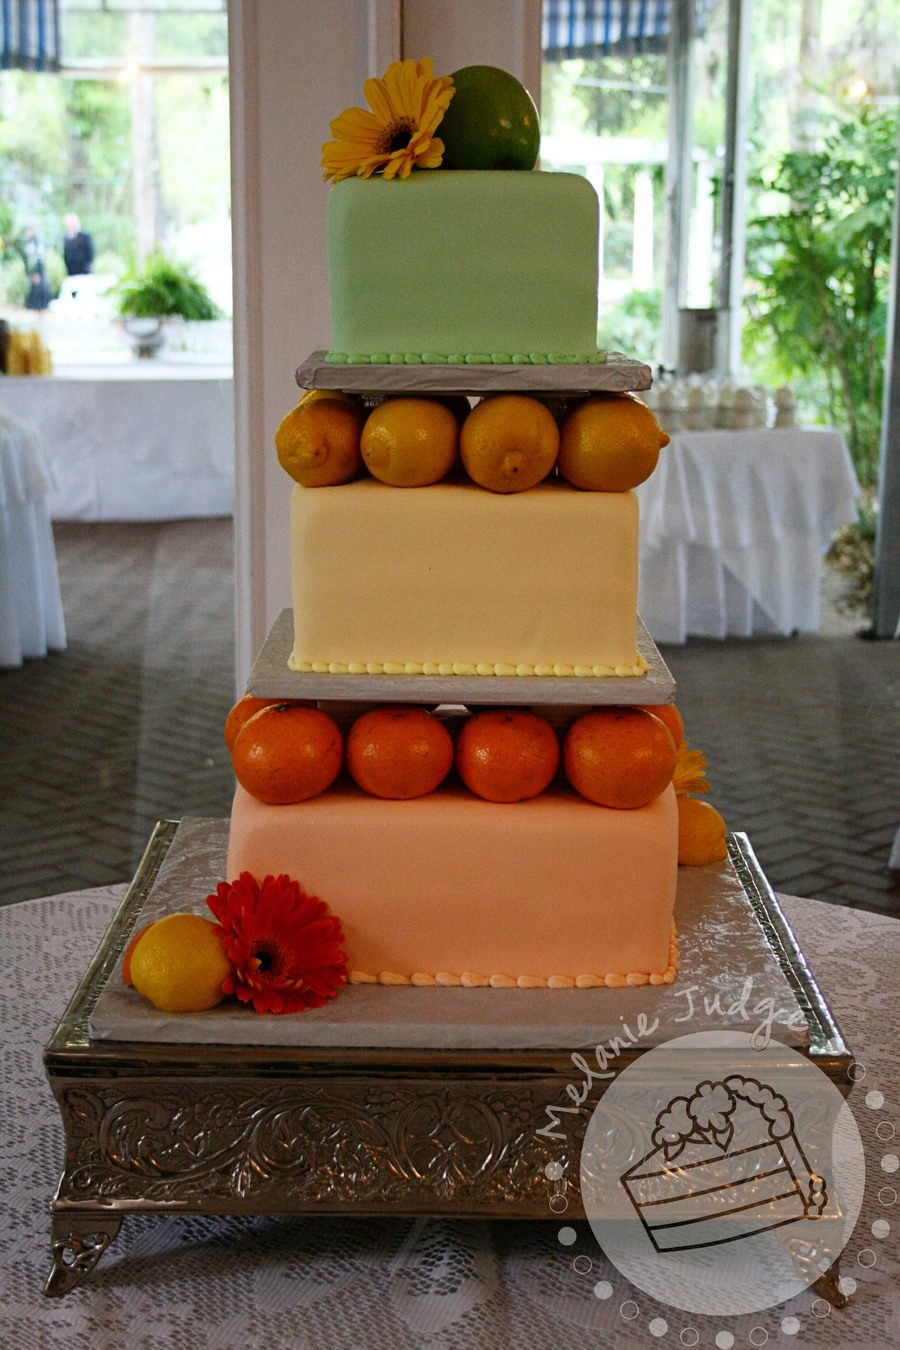 Wedding Cakes with Real Fruit